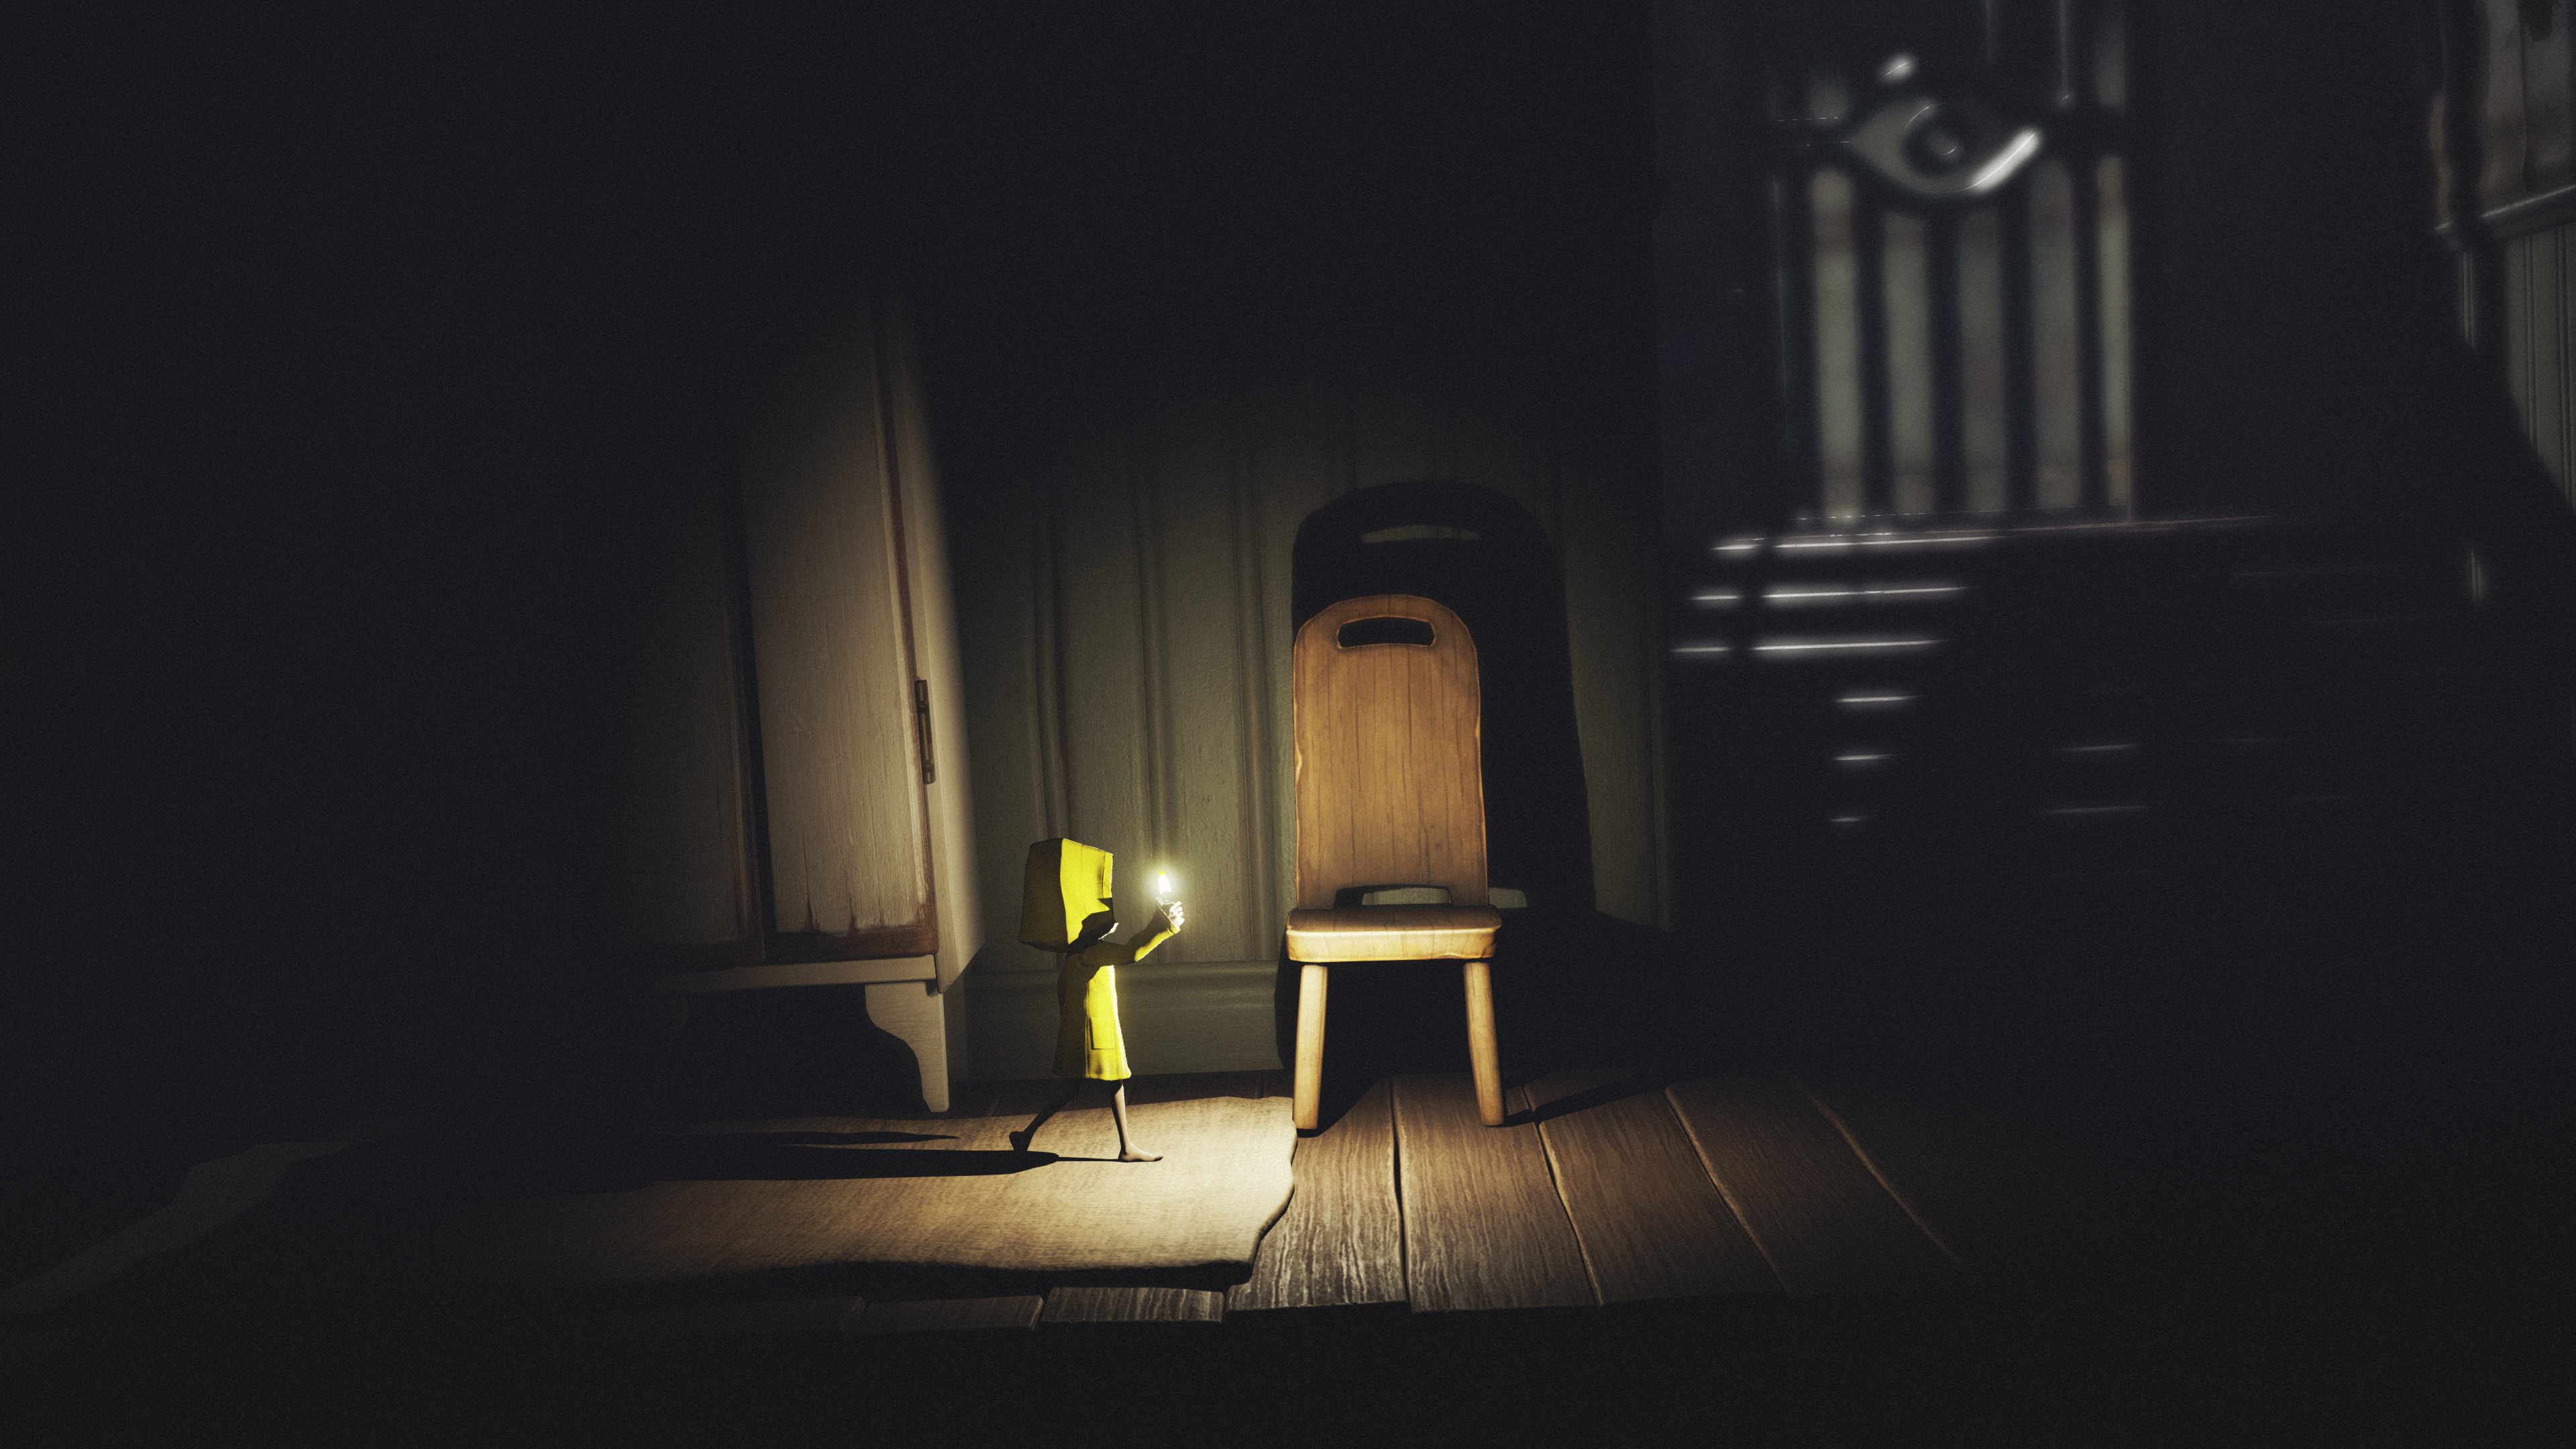 2017 Little Nightmares Hd Games 4k Wallpapers Images Backgrounds